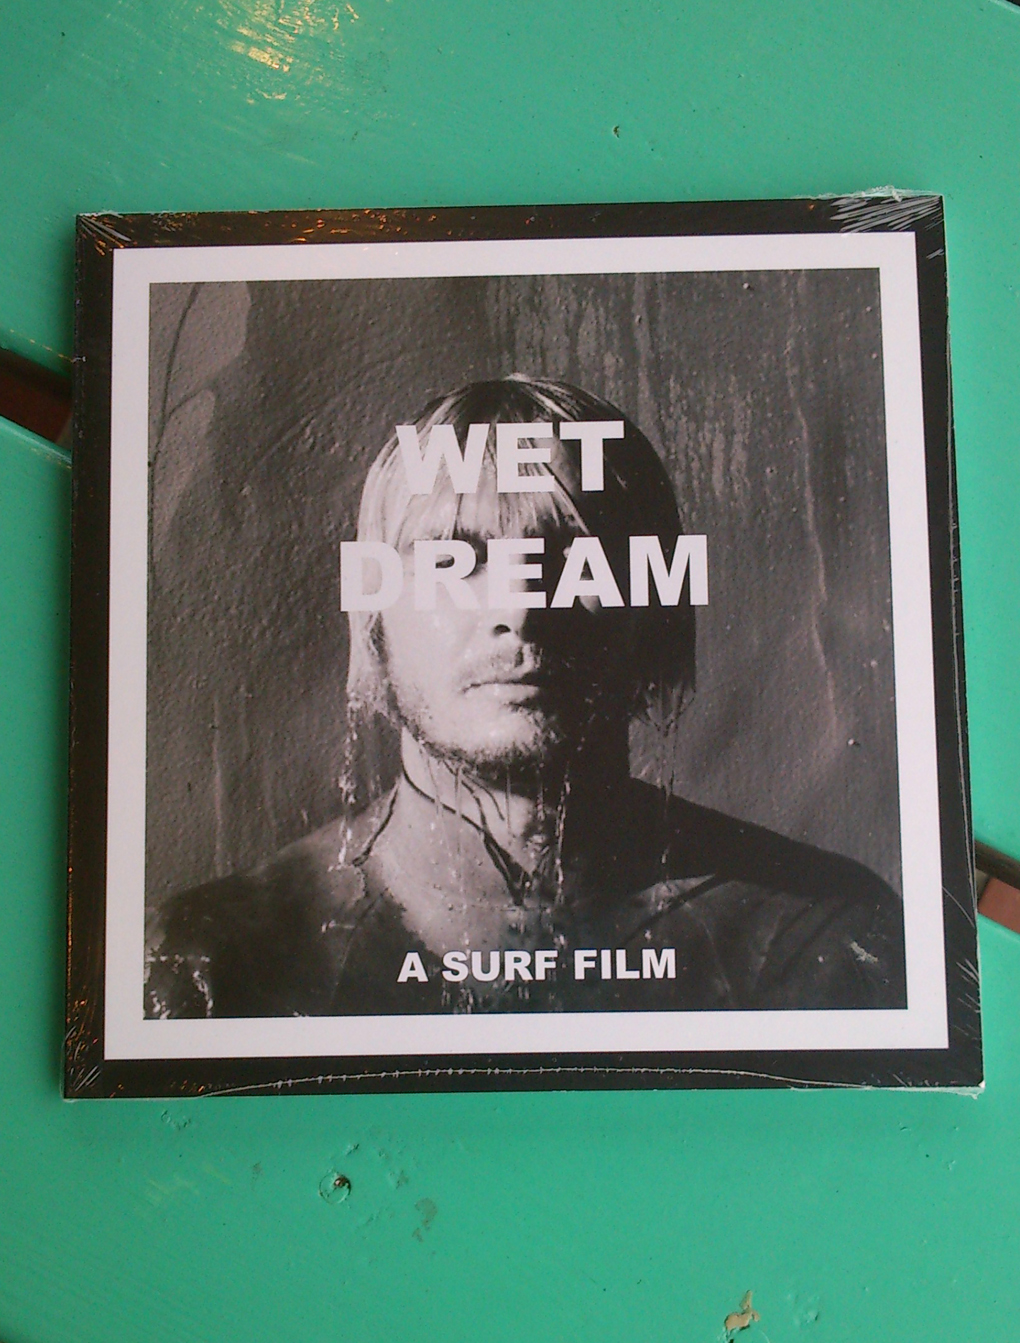 Wet_dream